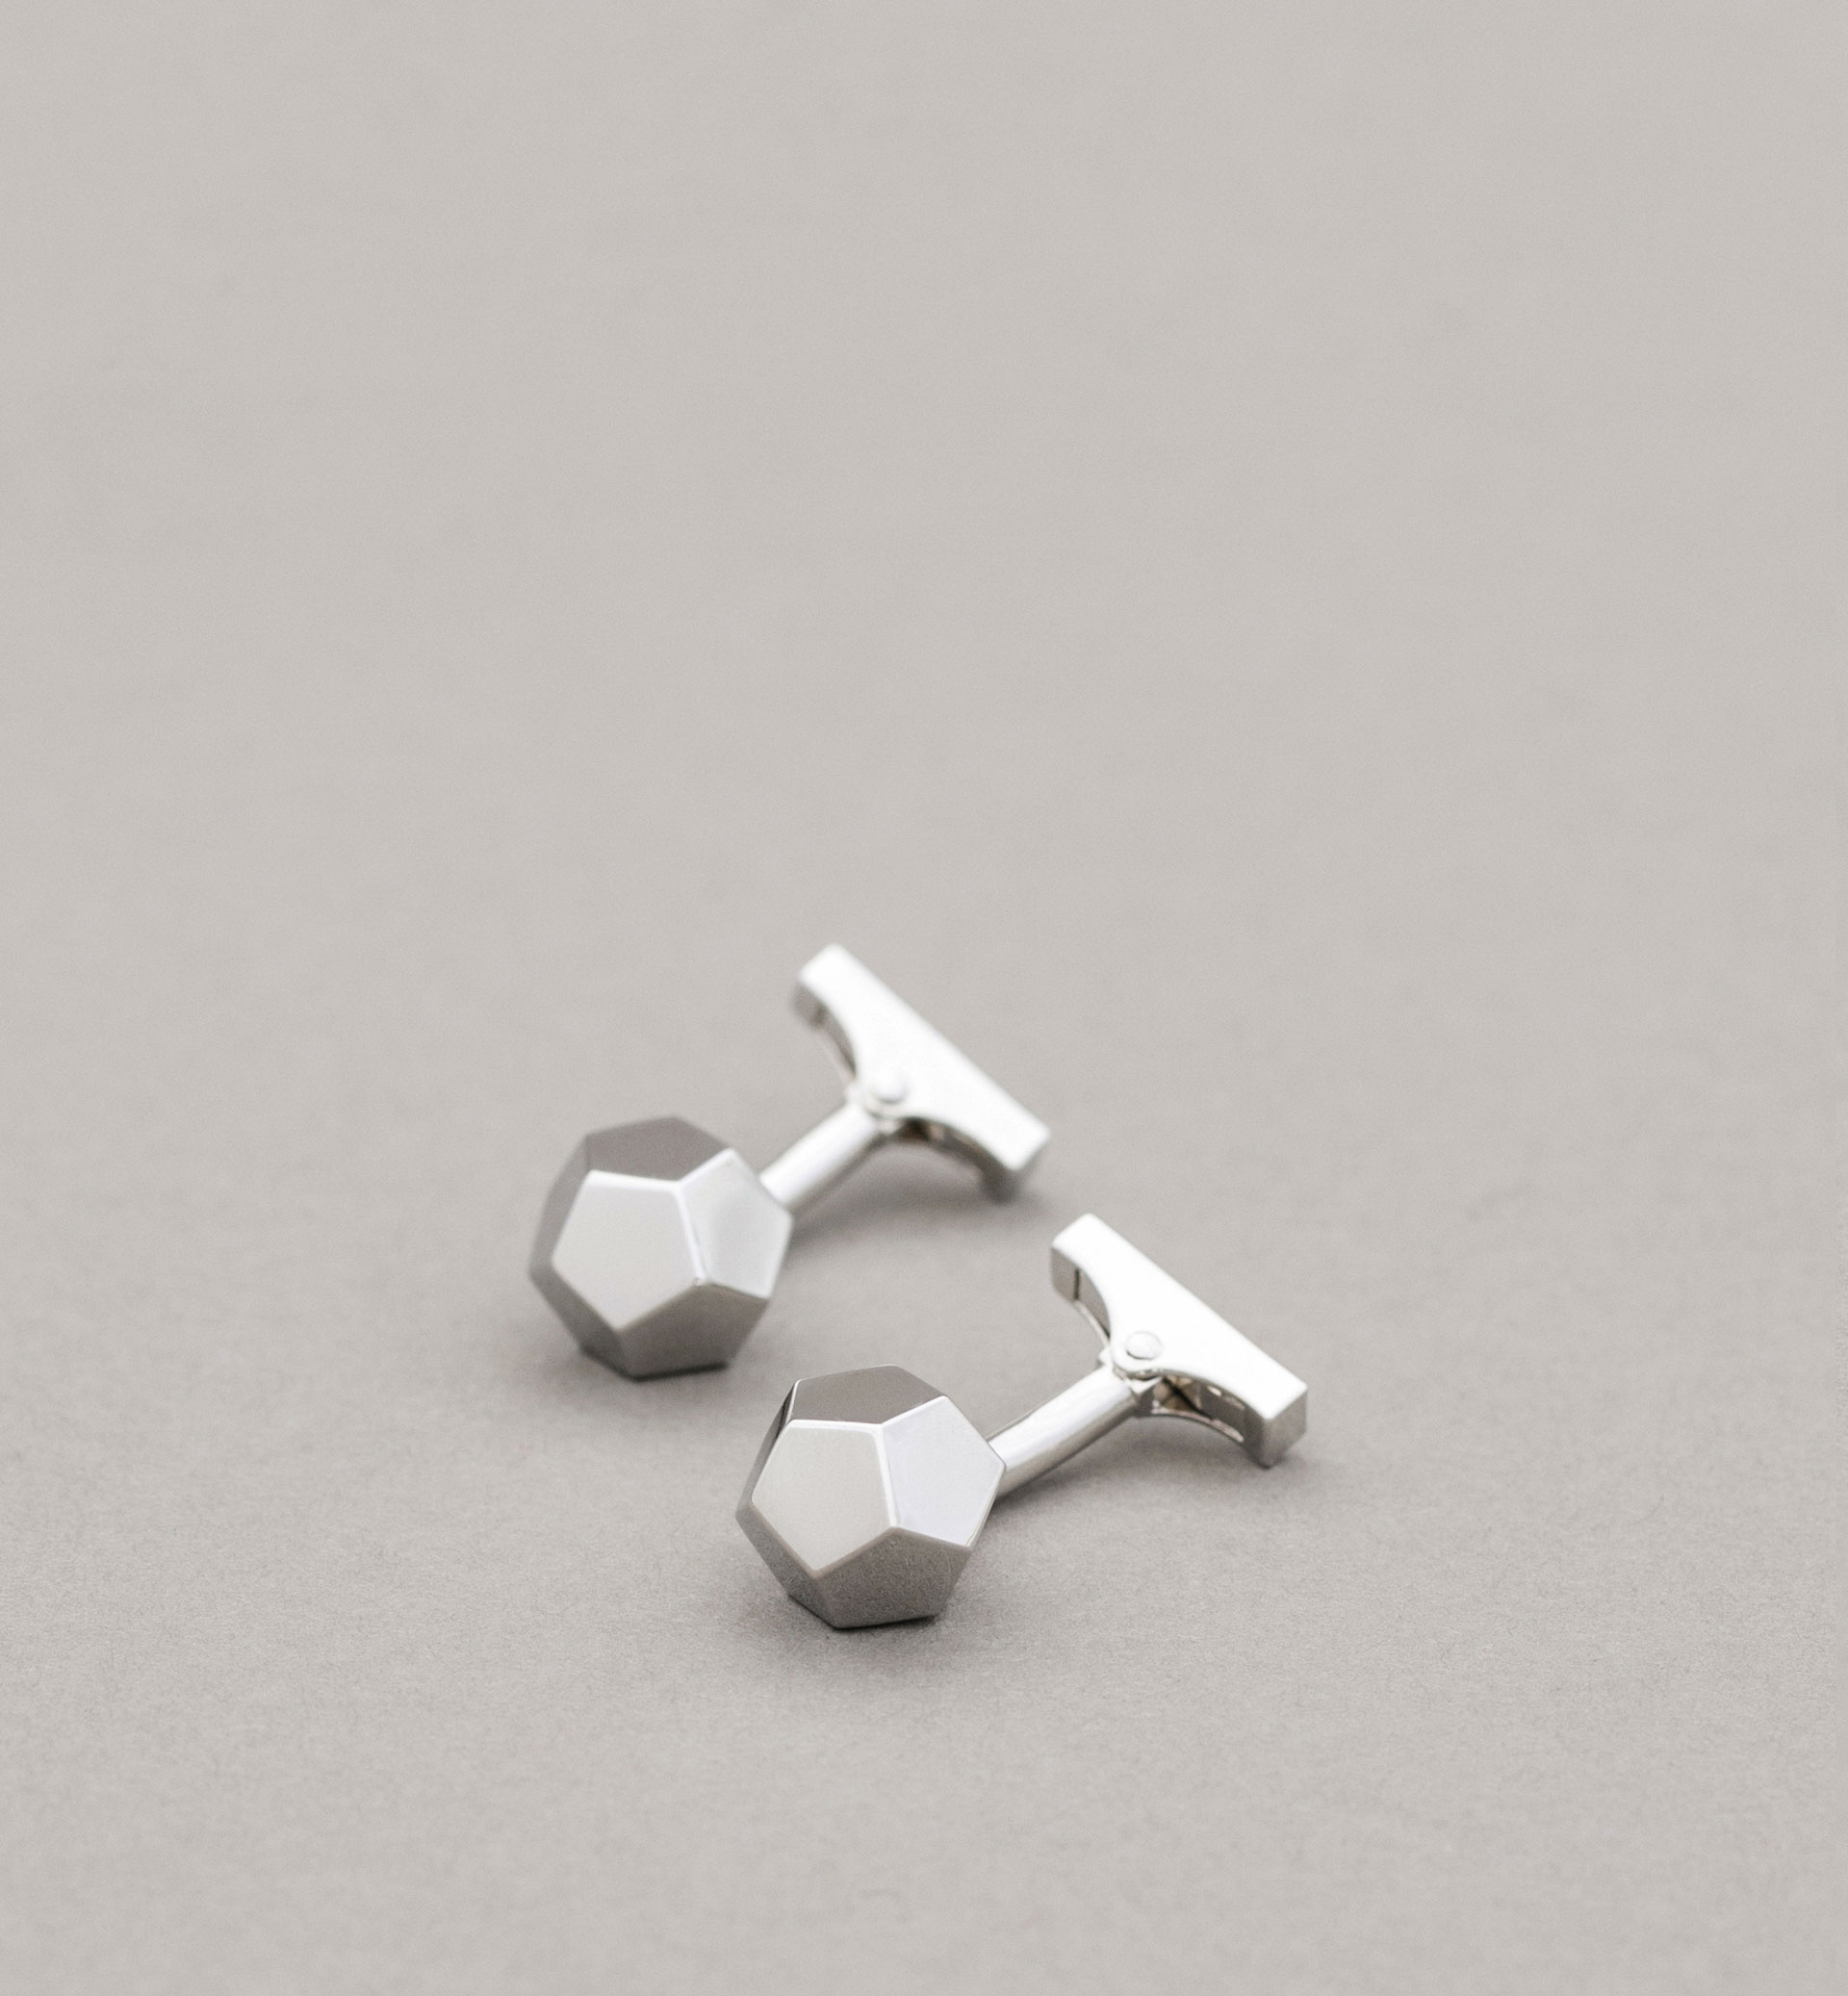 PERSONAL TAILORING DODECAHEDRON CUFFLINKS